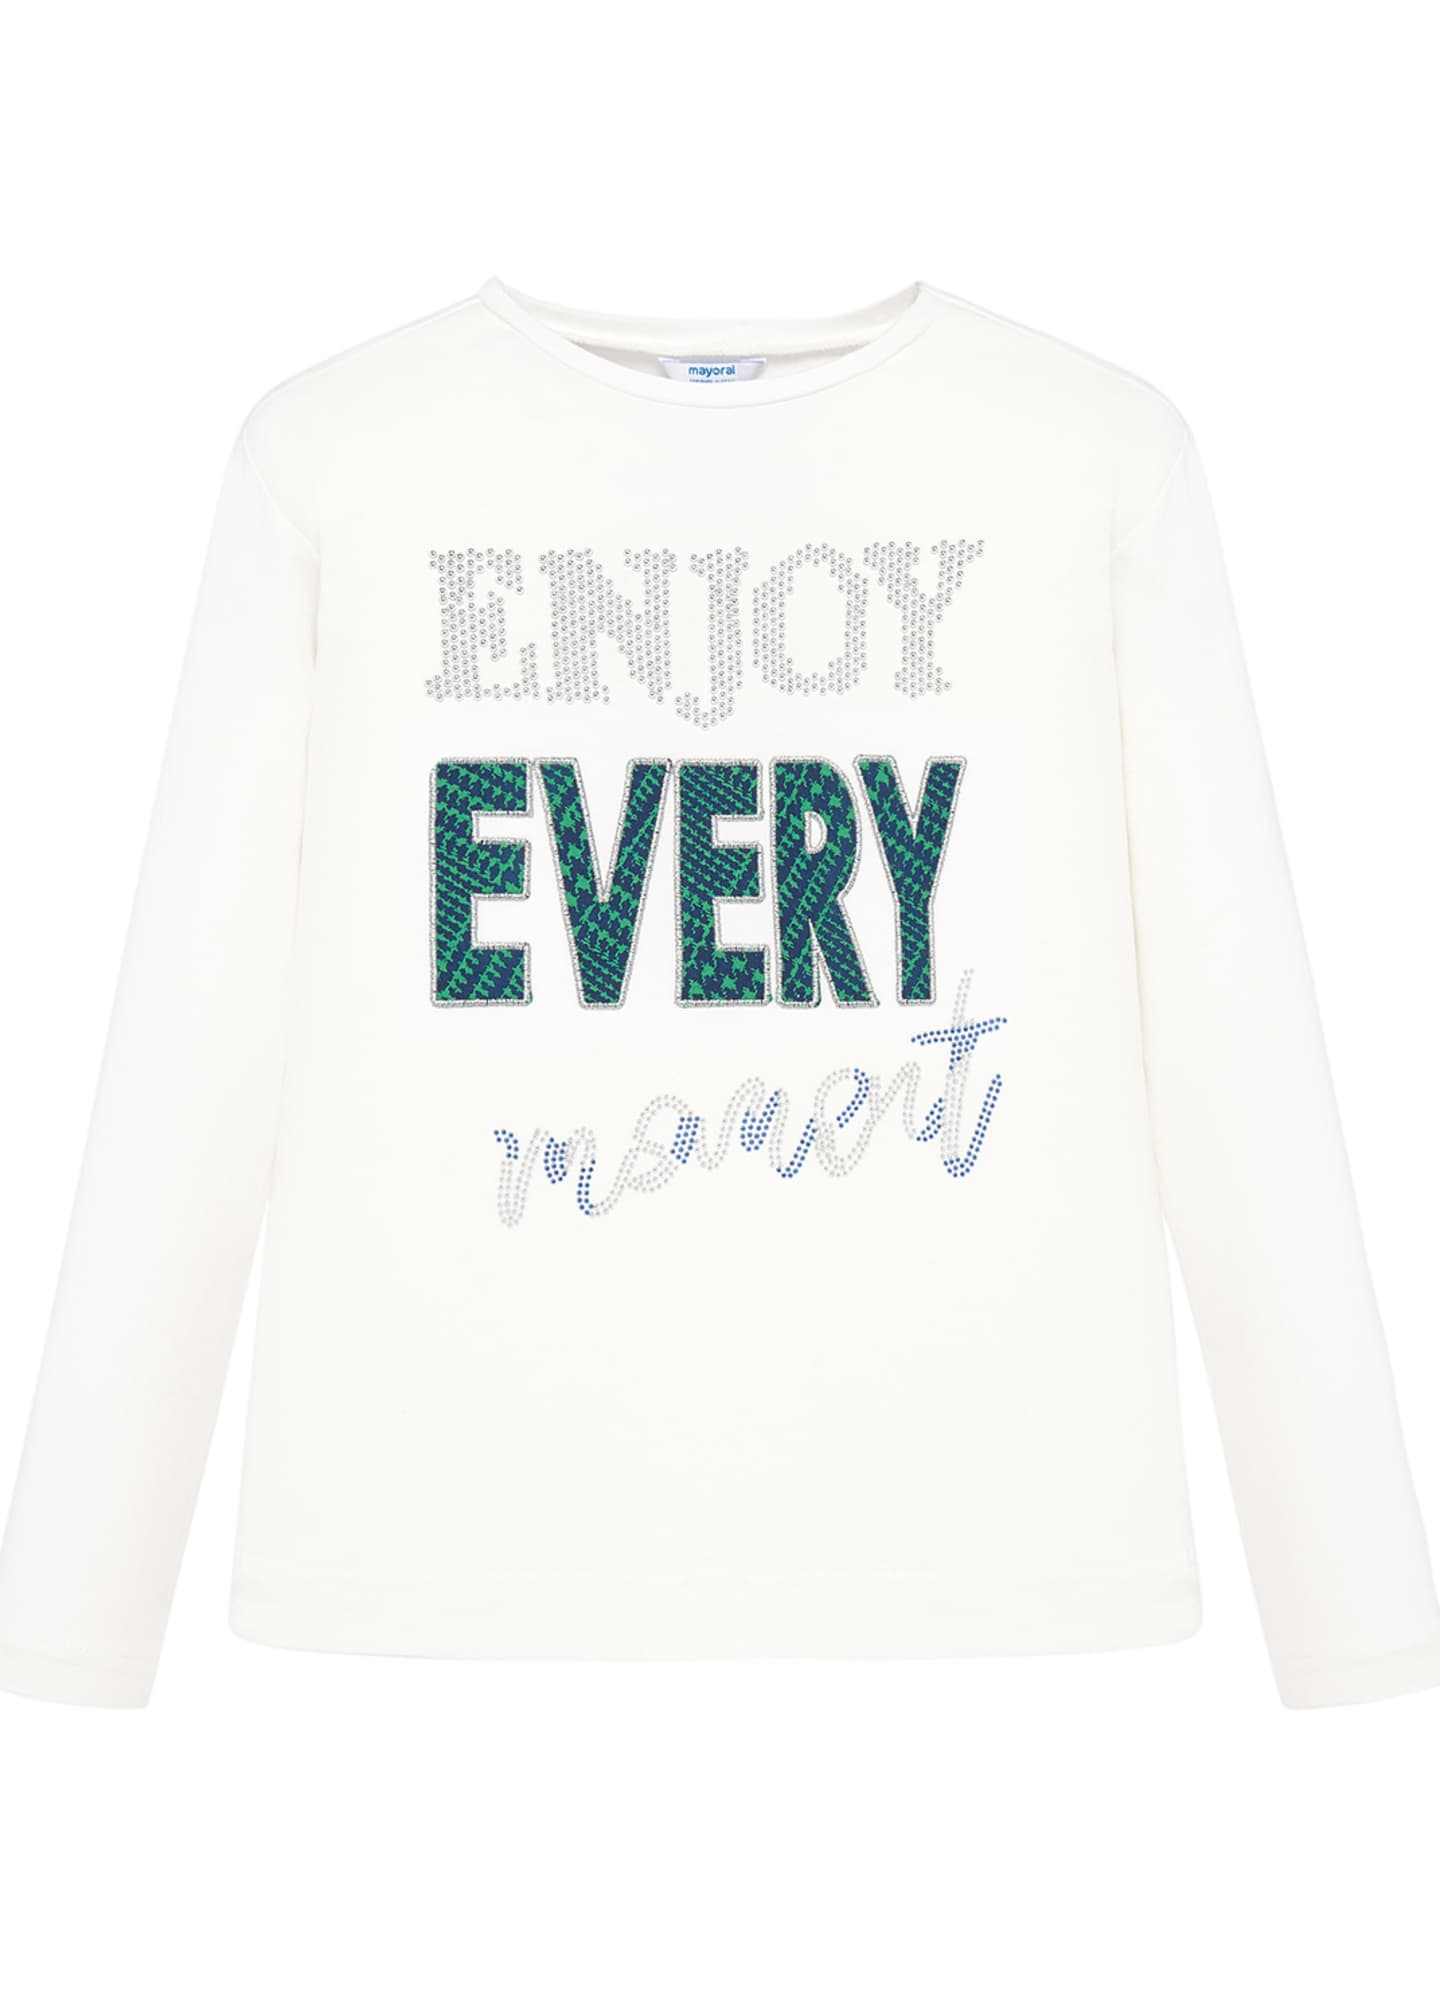 Mayoral Girl's Enjoy Every Moment Long-Sleeve Tee, Size